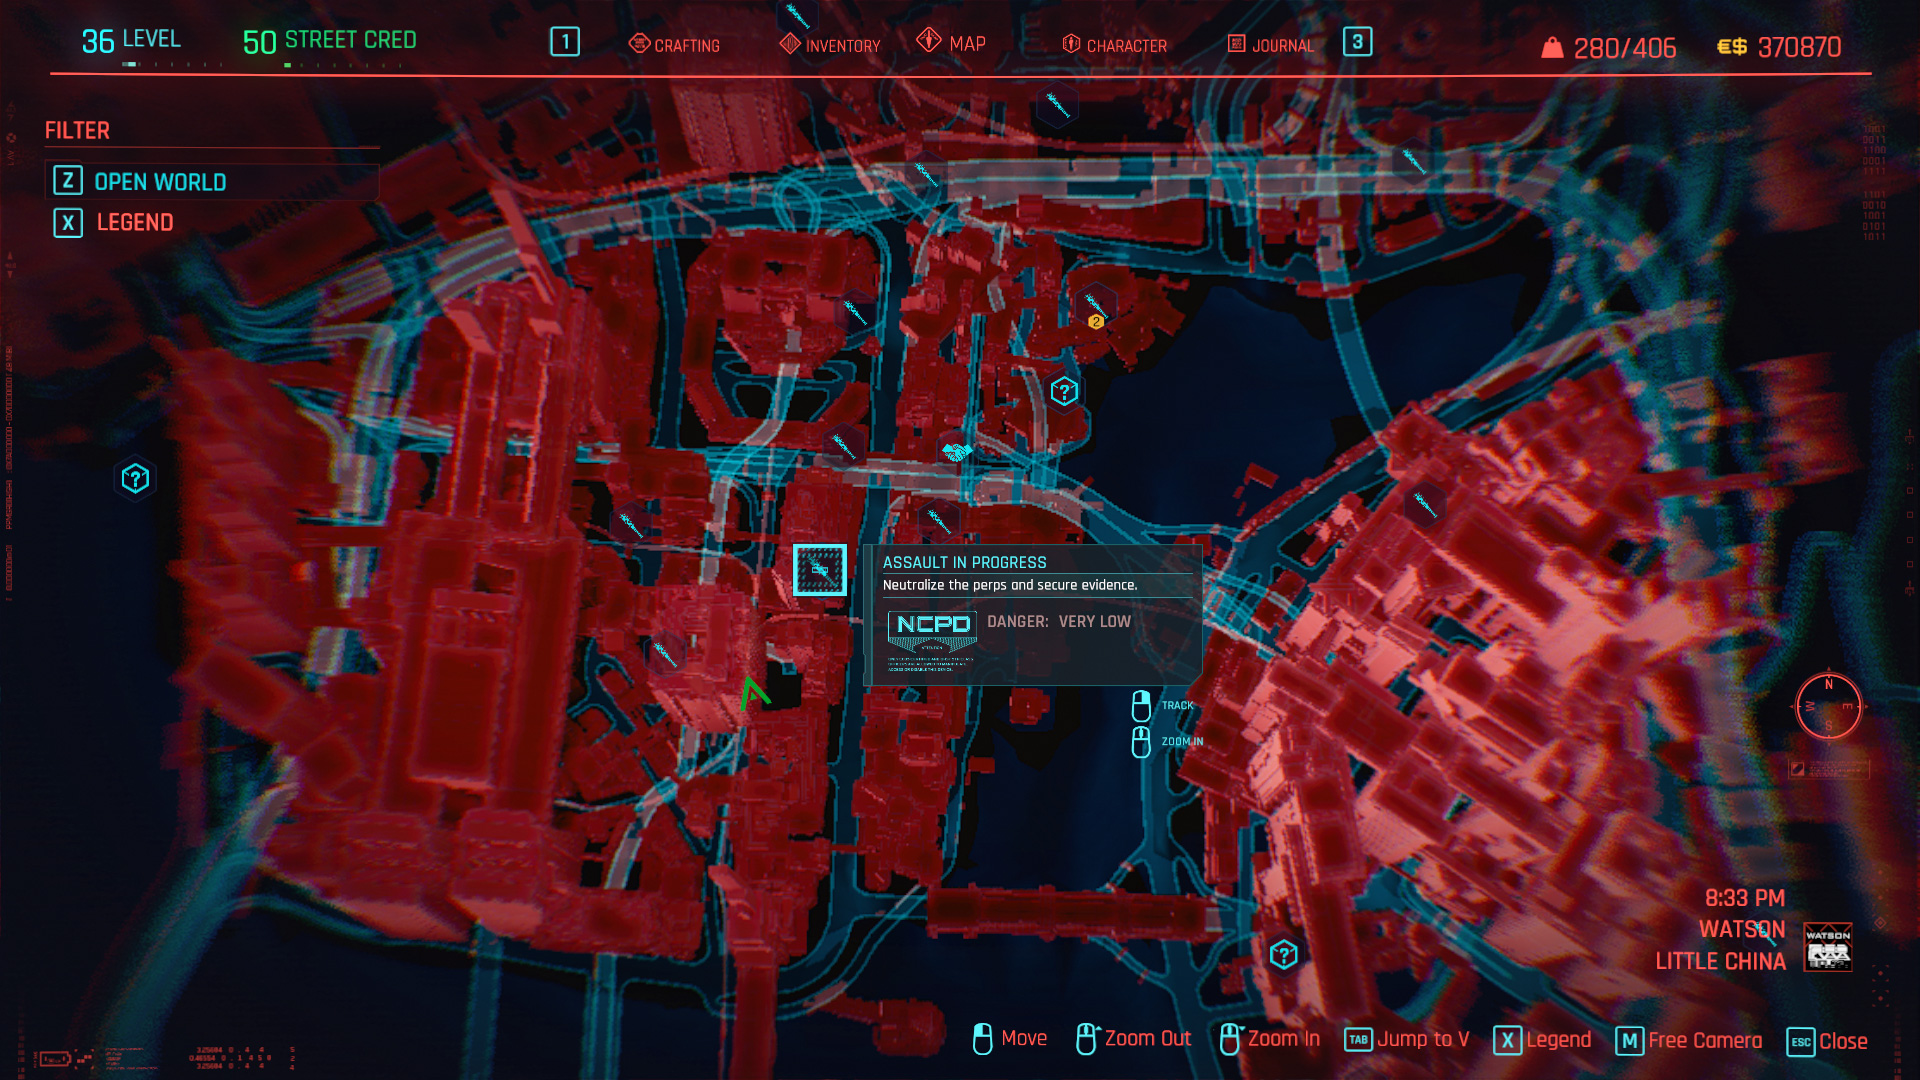 Open World Map NCPD Police Scanner Job Cyberpunk 2077